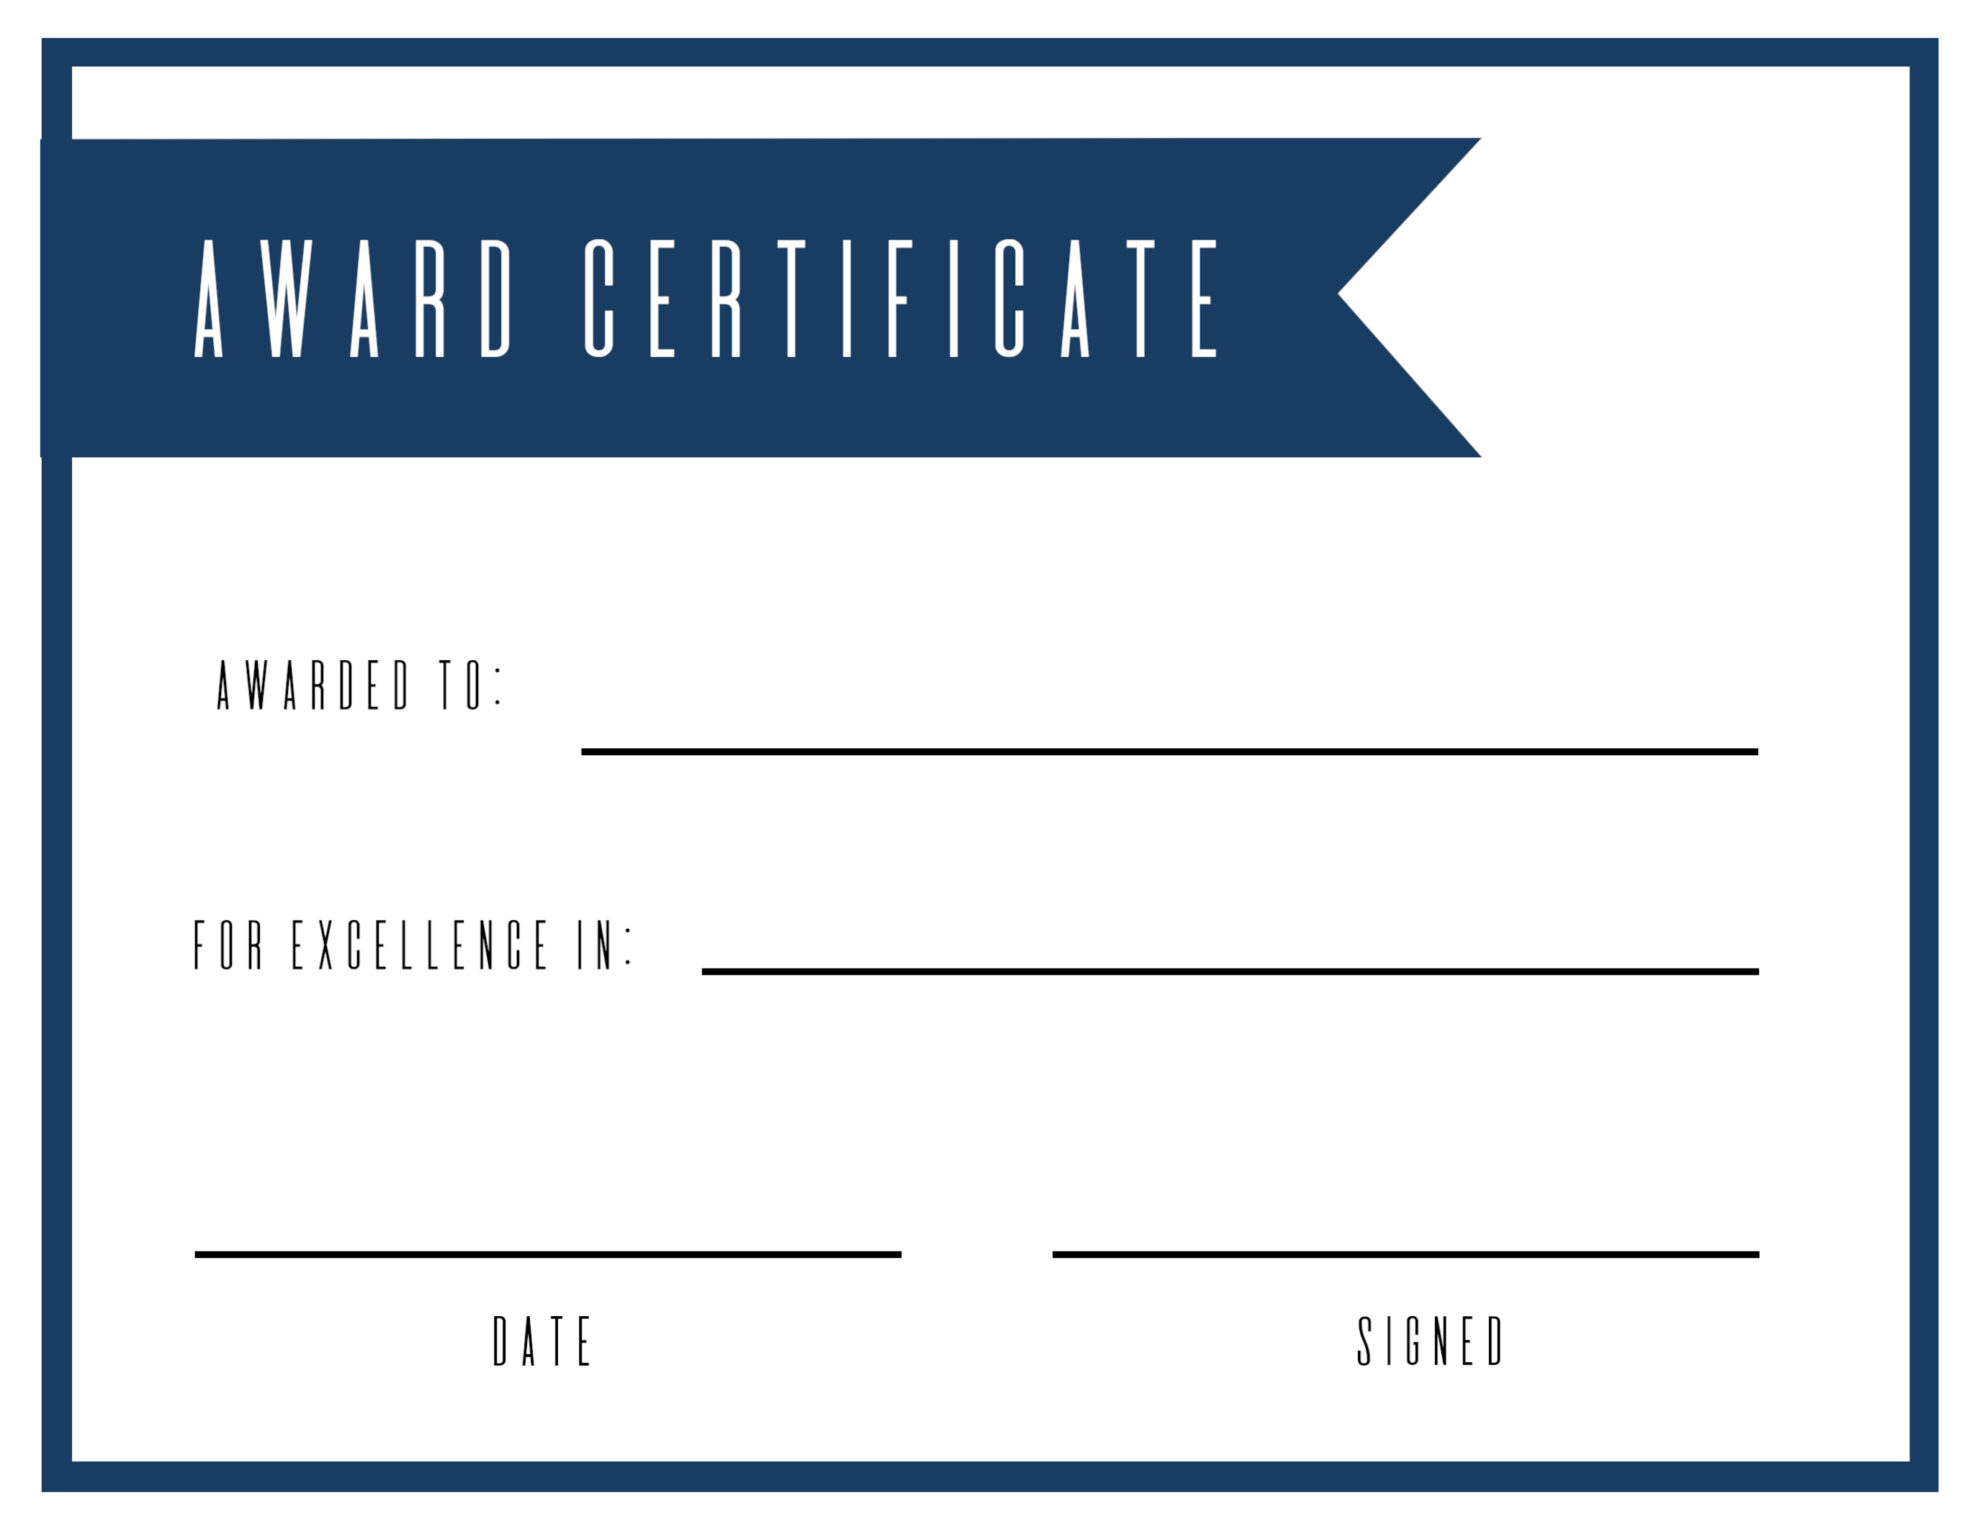 award certificate design template - free printable award certificate template paper trail design